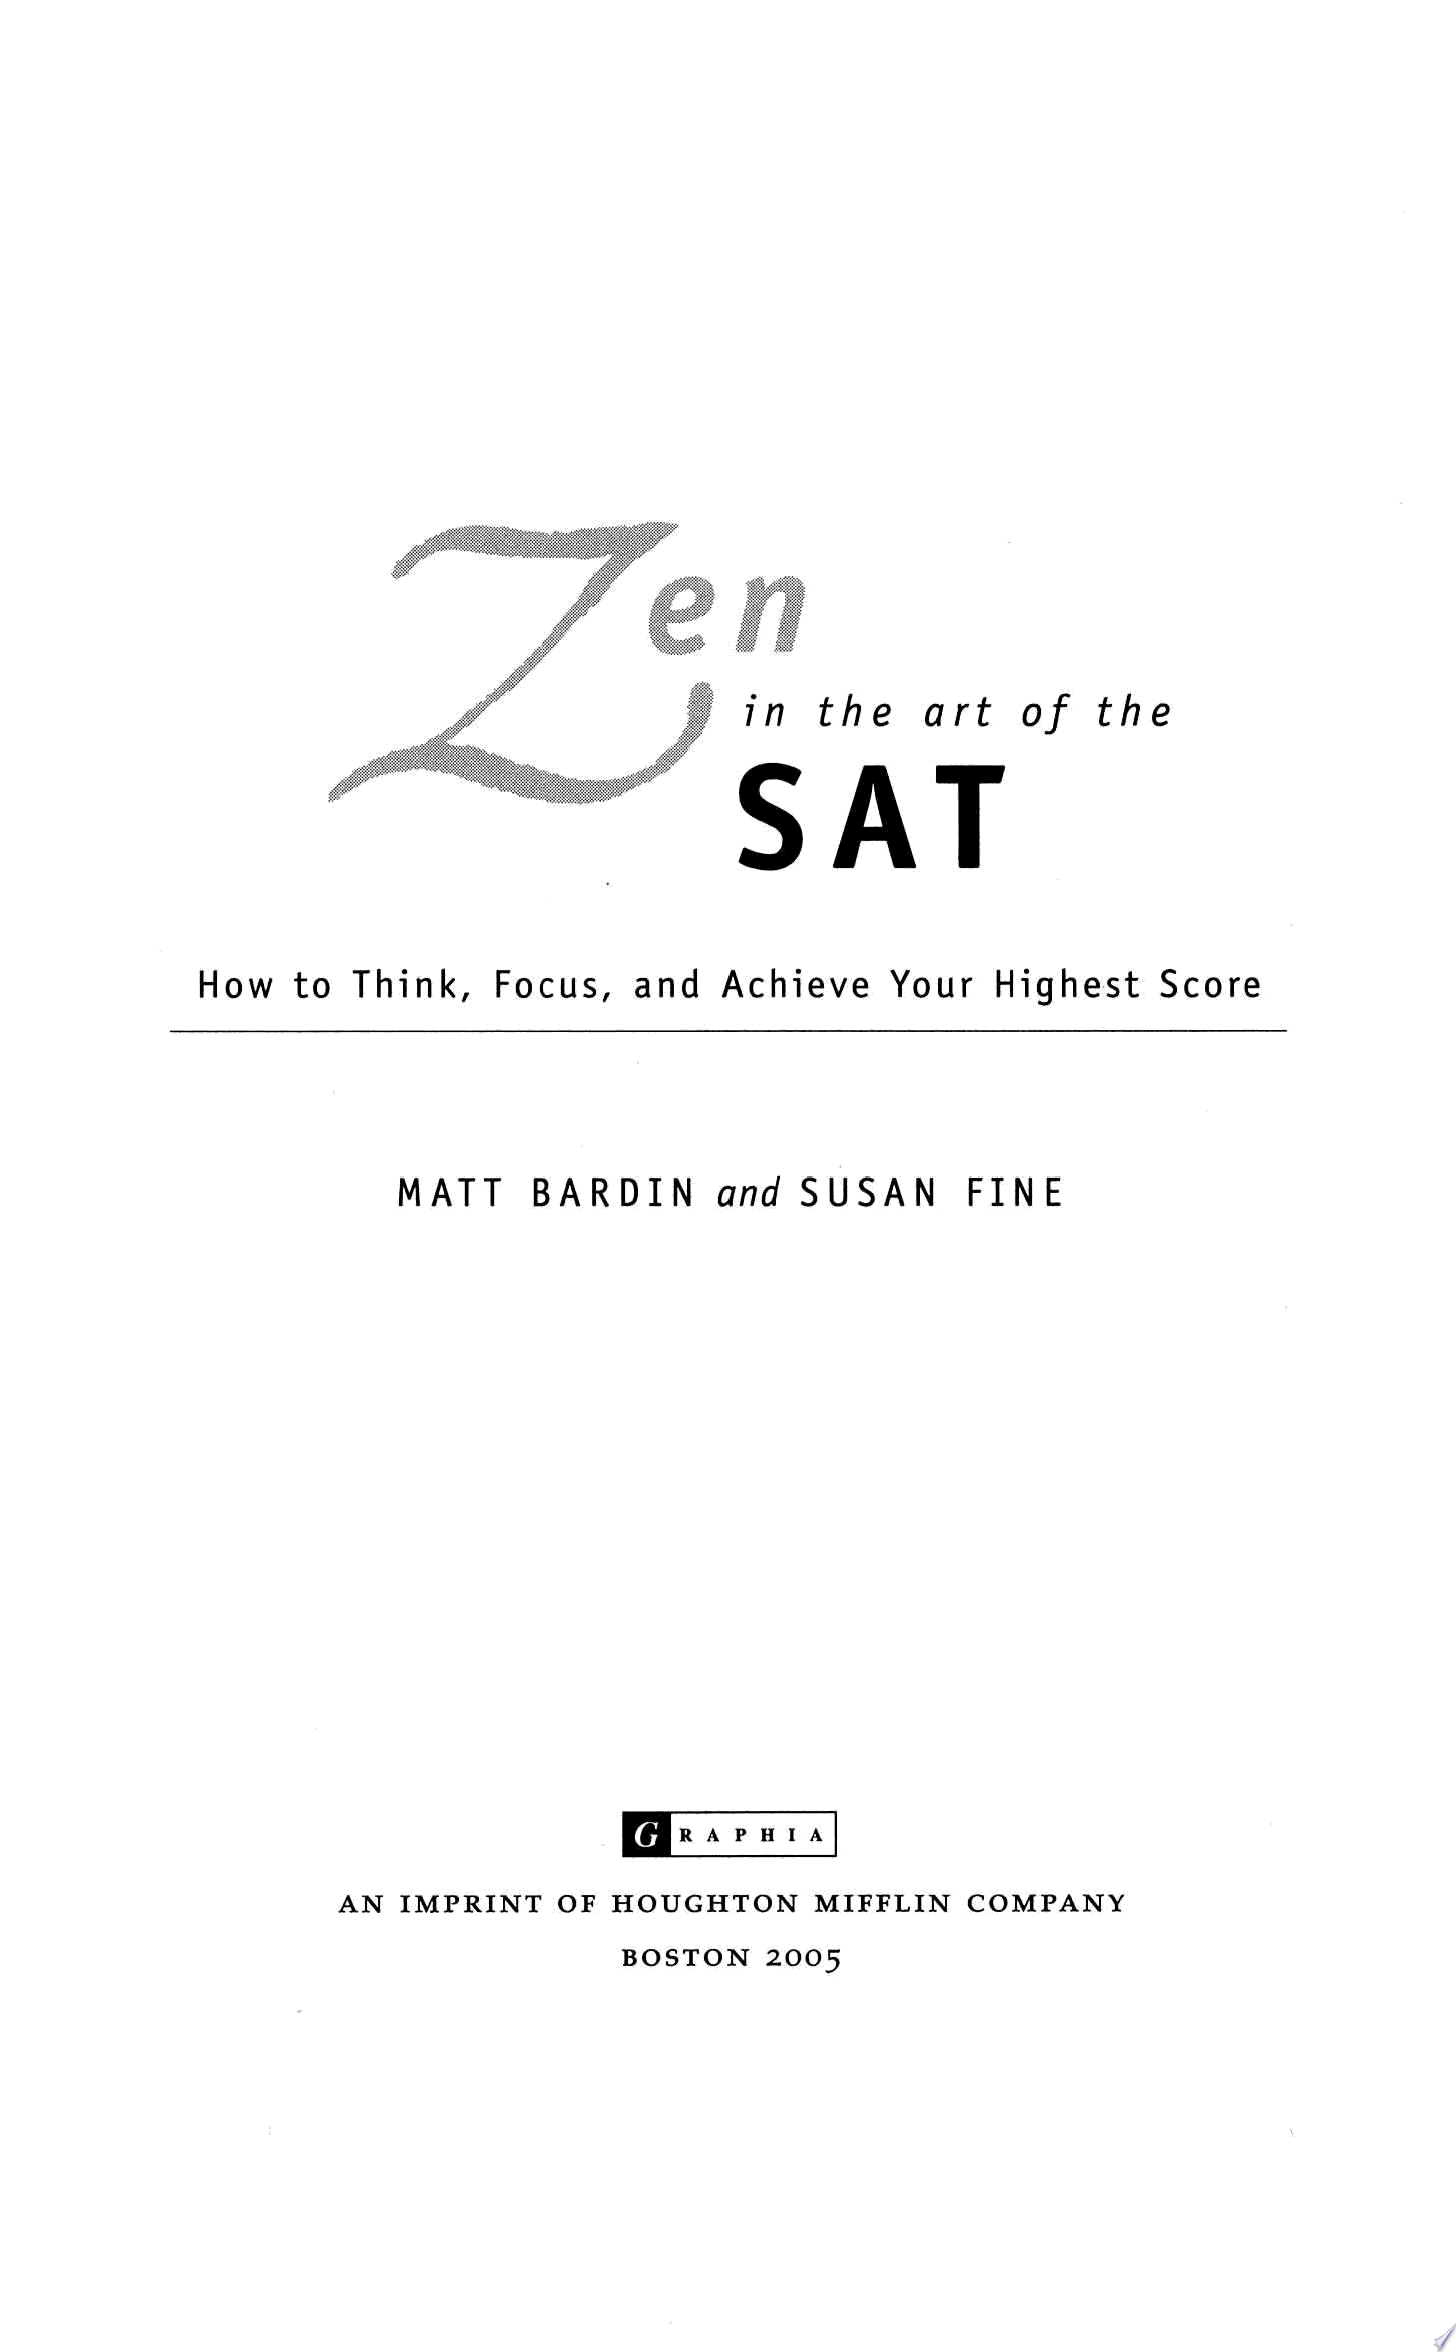 Zen in the Art of the SAT